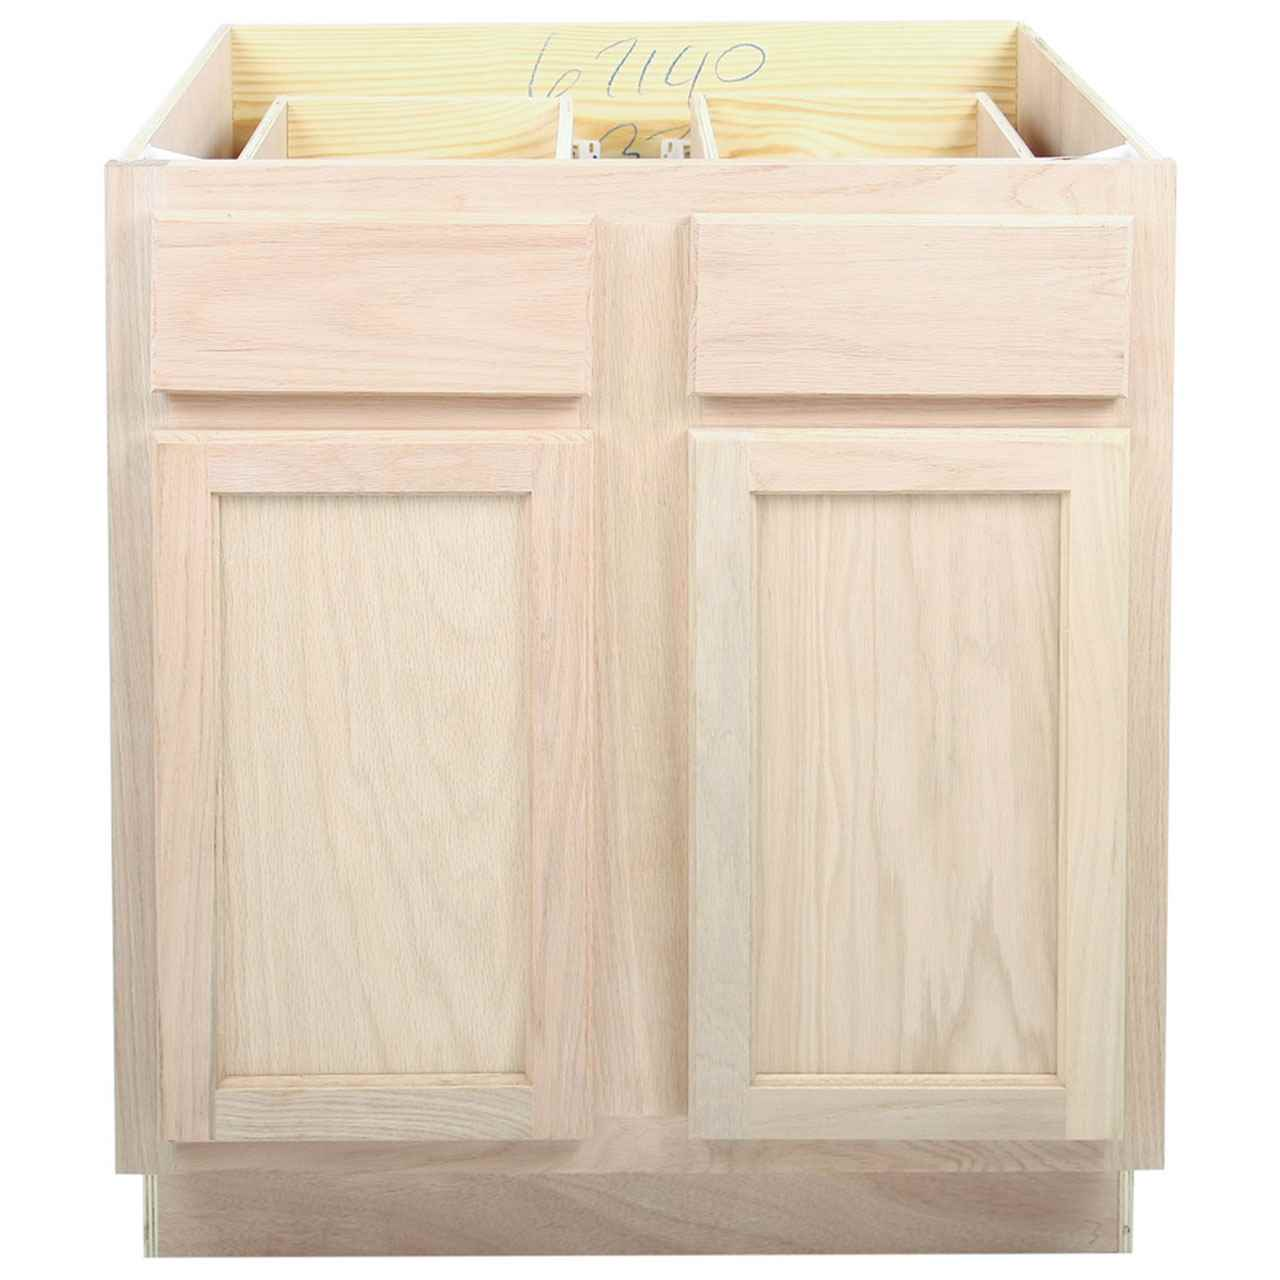 Saco Unfinished Bc Kitchen Base Cabinet Full Height 36 Inch 42 Inch Saco Collection Unfinished Kitchen Base Cabinets The Home Improvement Outlet